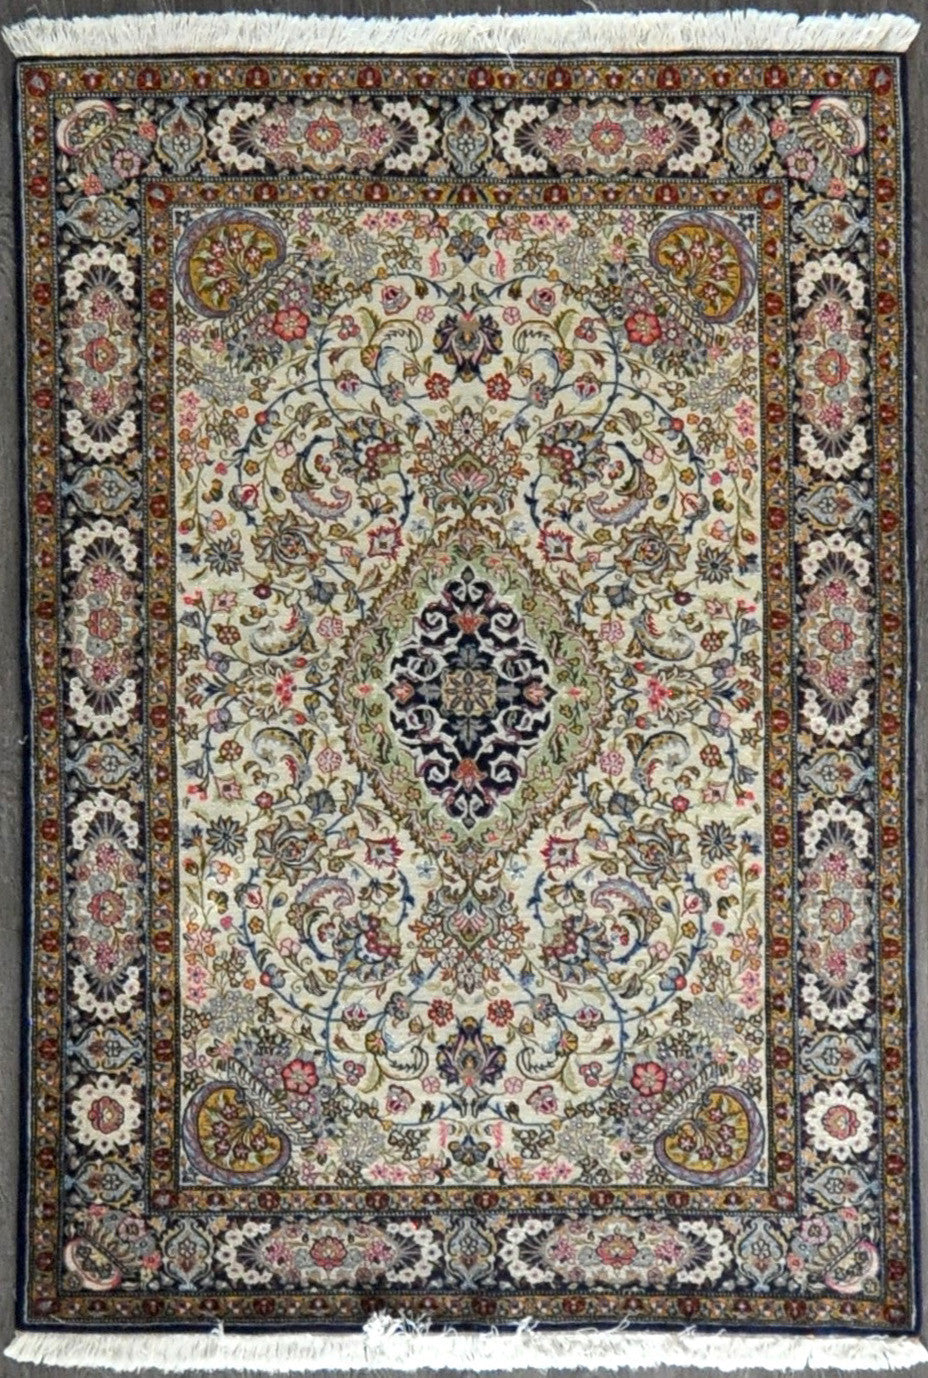 6.4x6.8 persian qum #88110 Sold